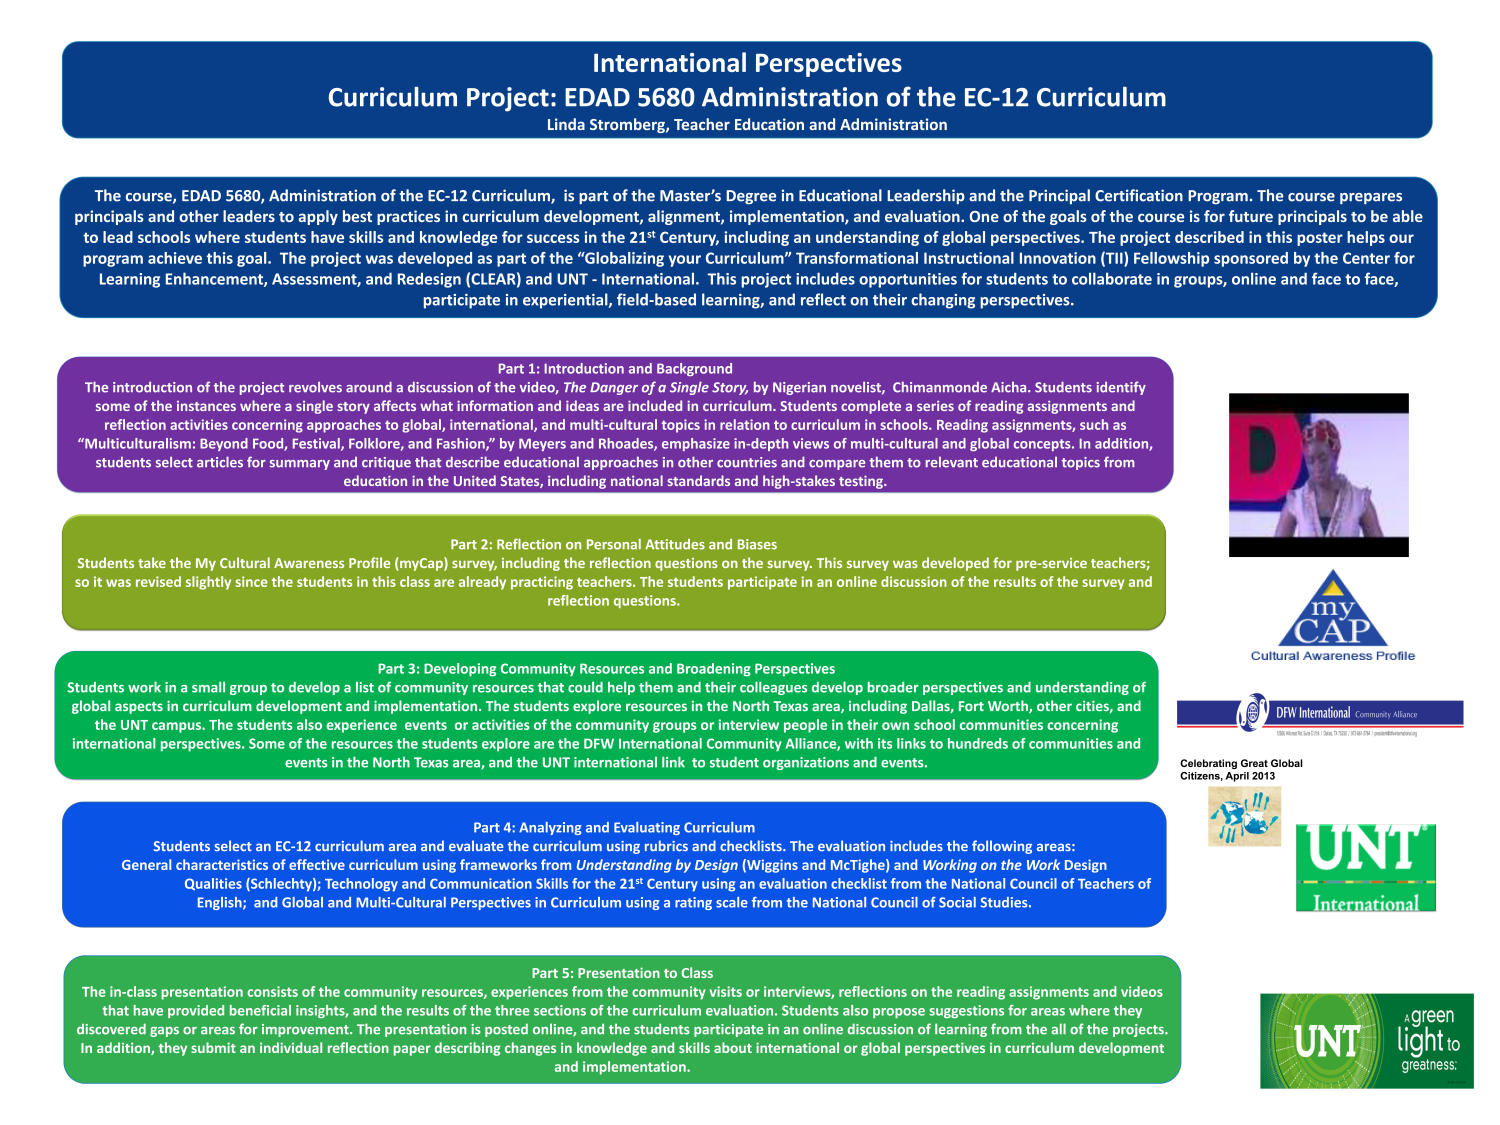 International Perspectives Curriculum Project: EDAD 5680 Administration of the EC-12 Curriculum                                                                                                      [Sequence #]: 1 of 1